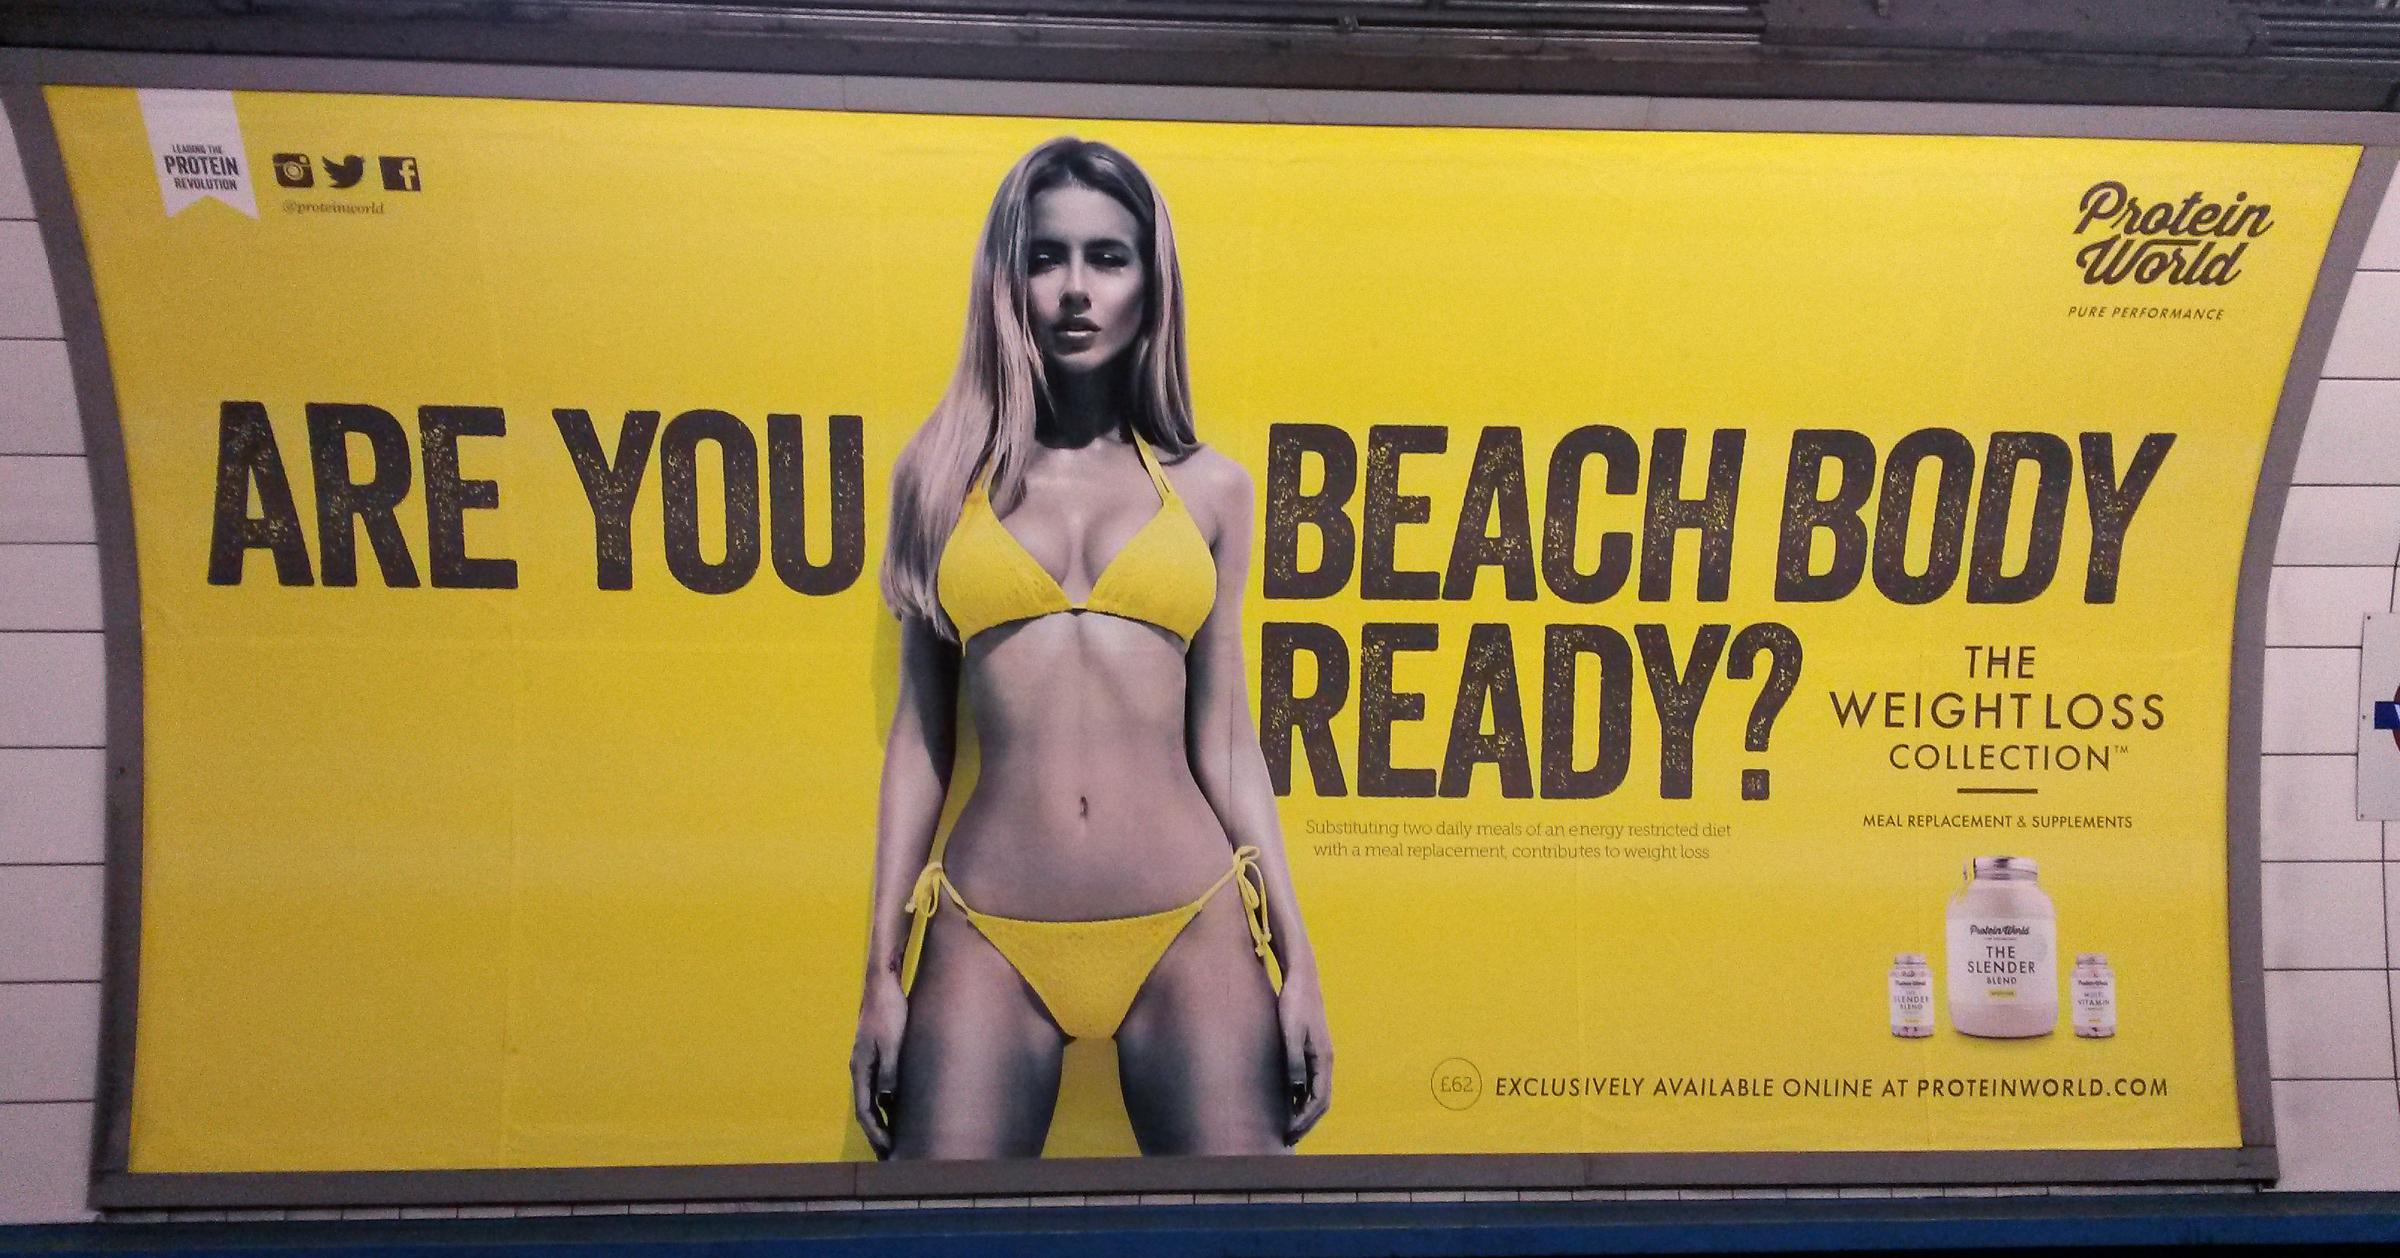 This 'are you beach body ready?' advert caused a storm when it appeared at London Underground stations